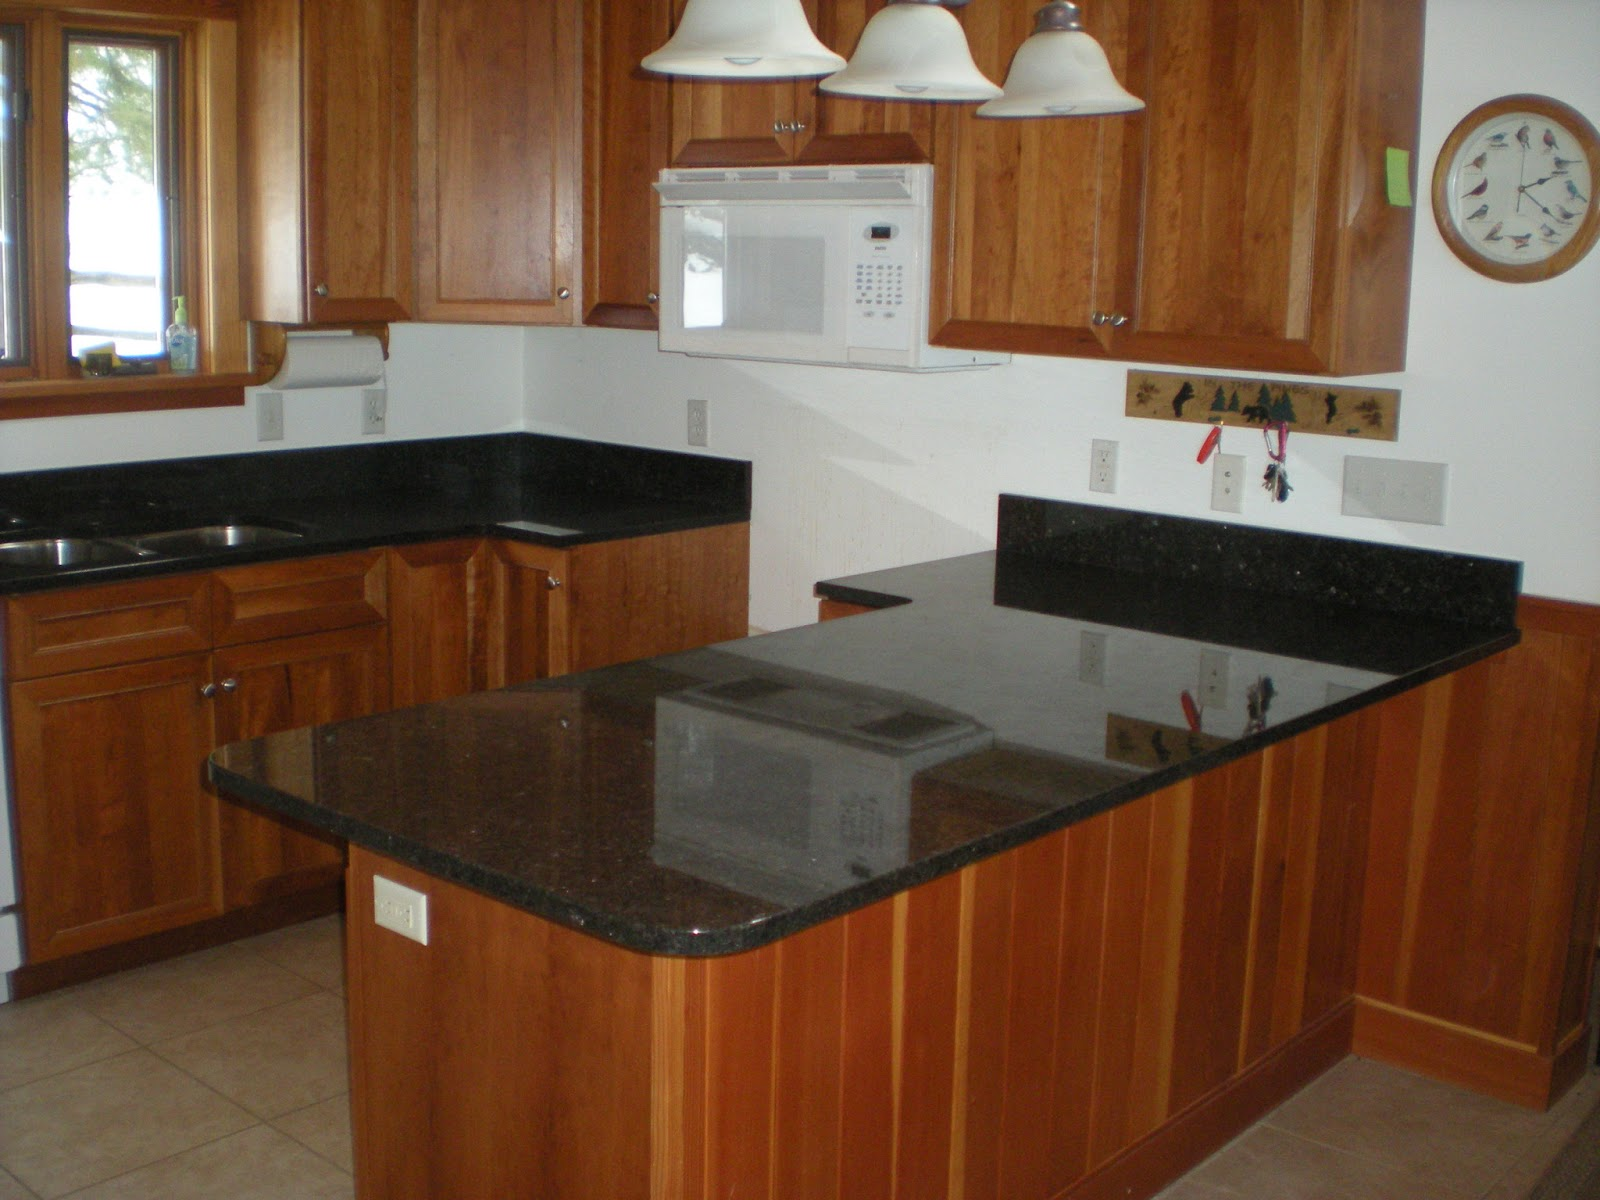 Kitchen Black Granite Countertops : A mesabi black granite countertop install huisman concepts